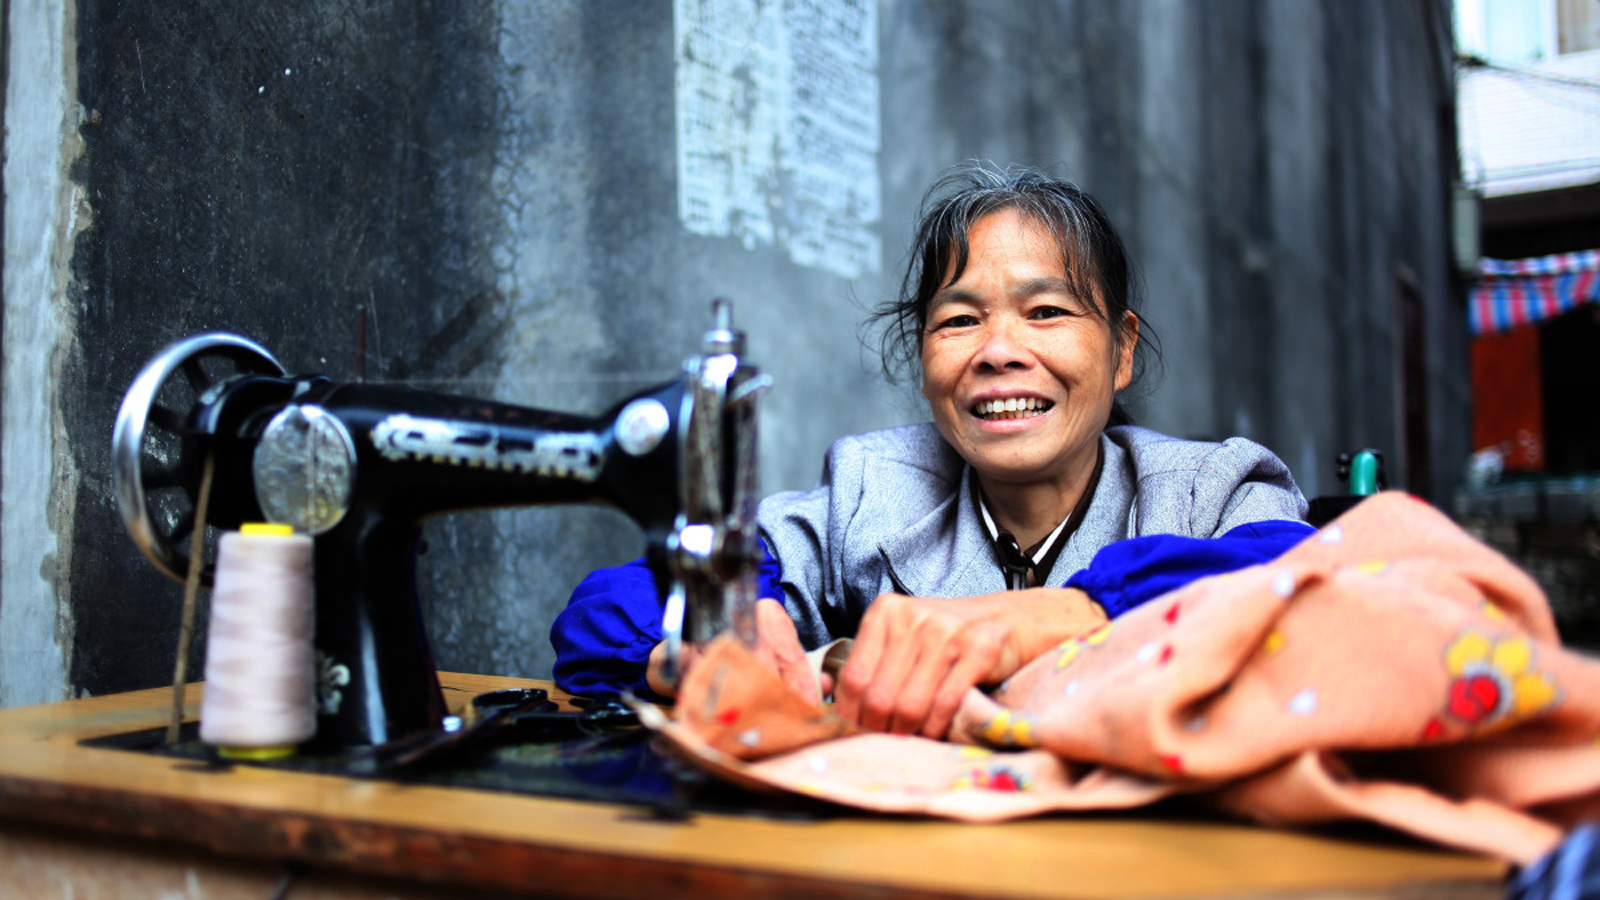 Lan Yuefeng who is in a wheelchair works as a seamstress in China thanks to support from HI